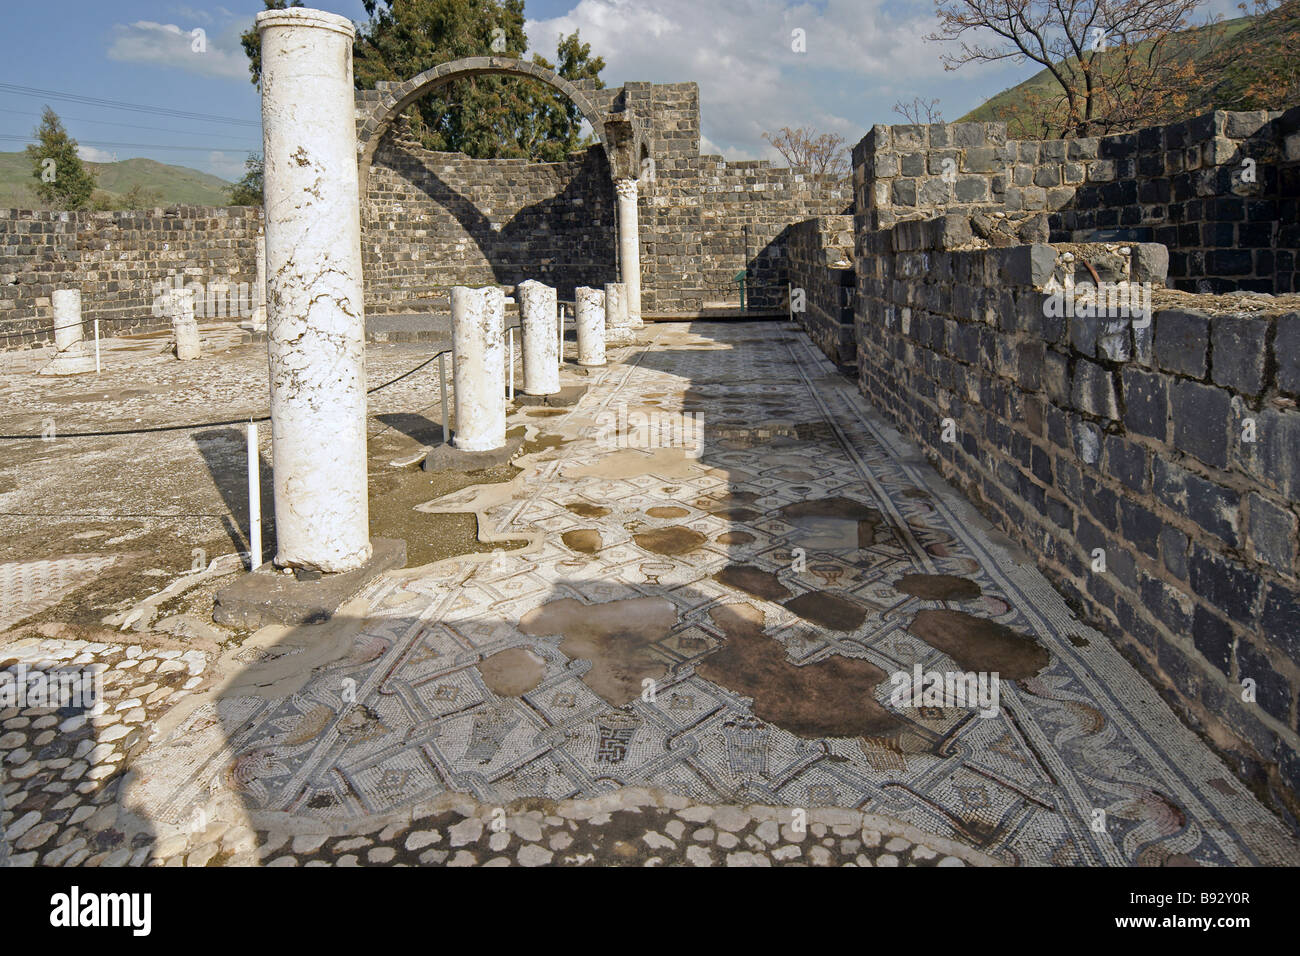 Israel Sea of Galilee Kursi Gergesa Byzantine monastery and mosaic floor - Stock Image